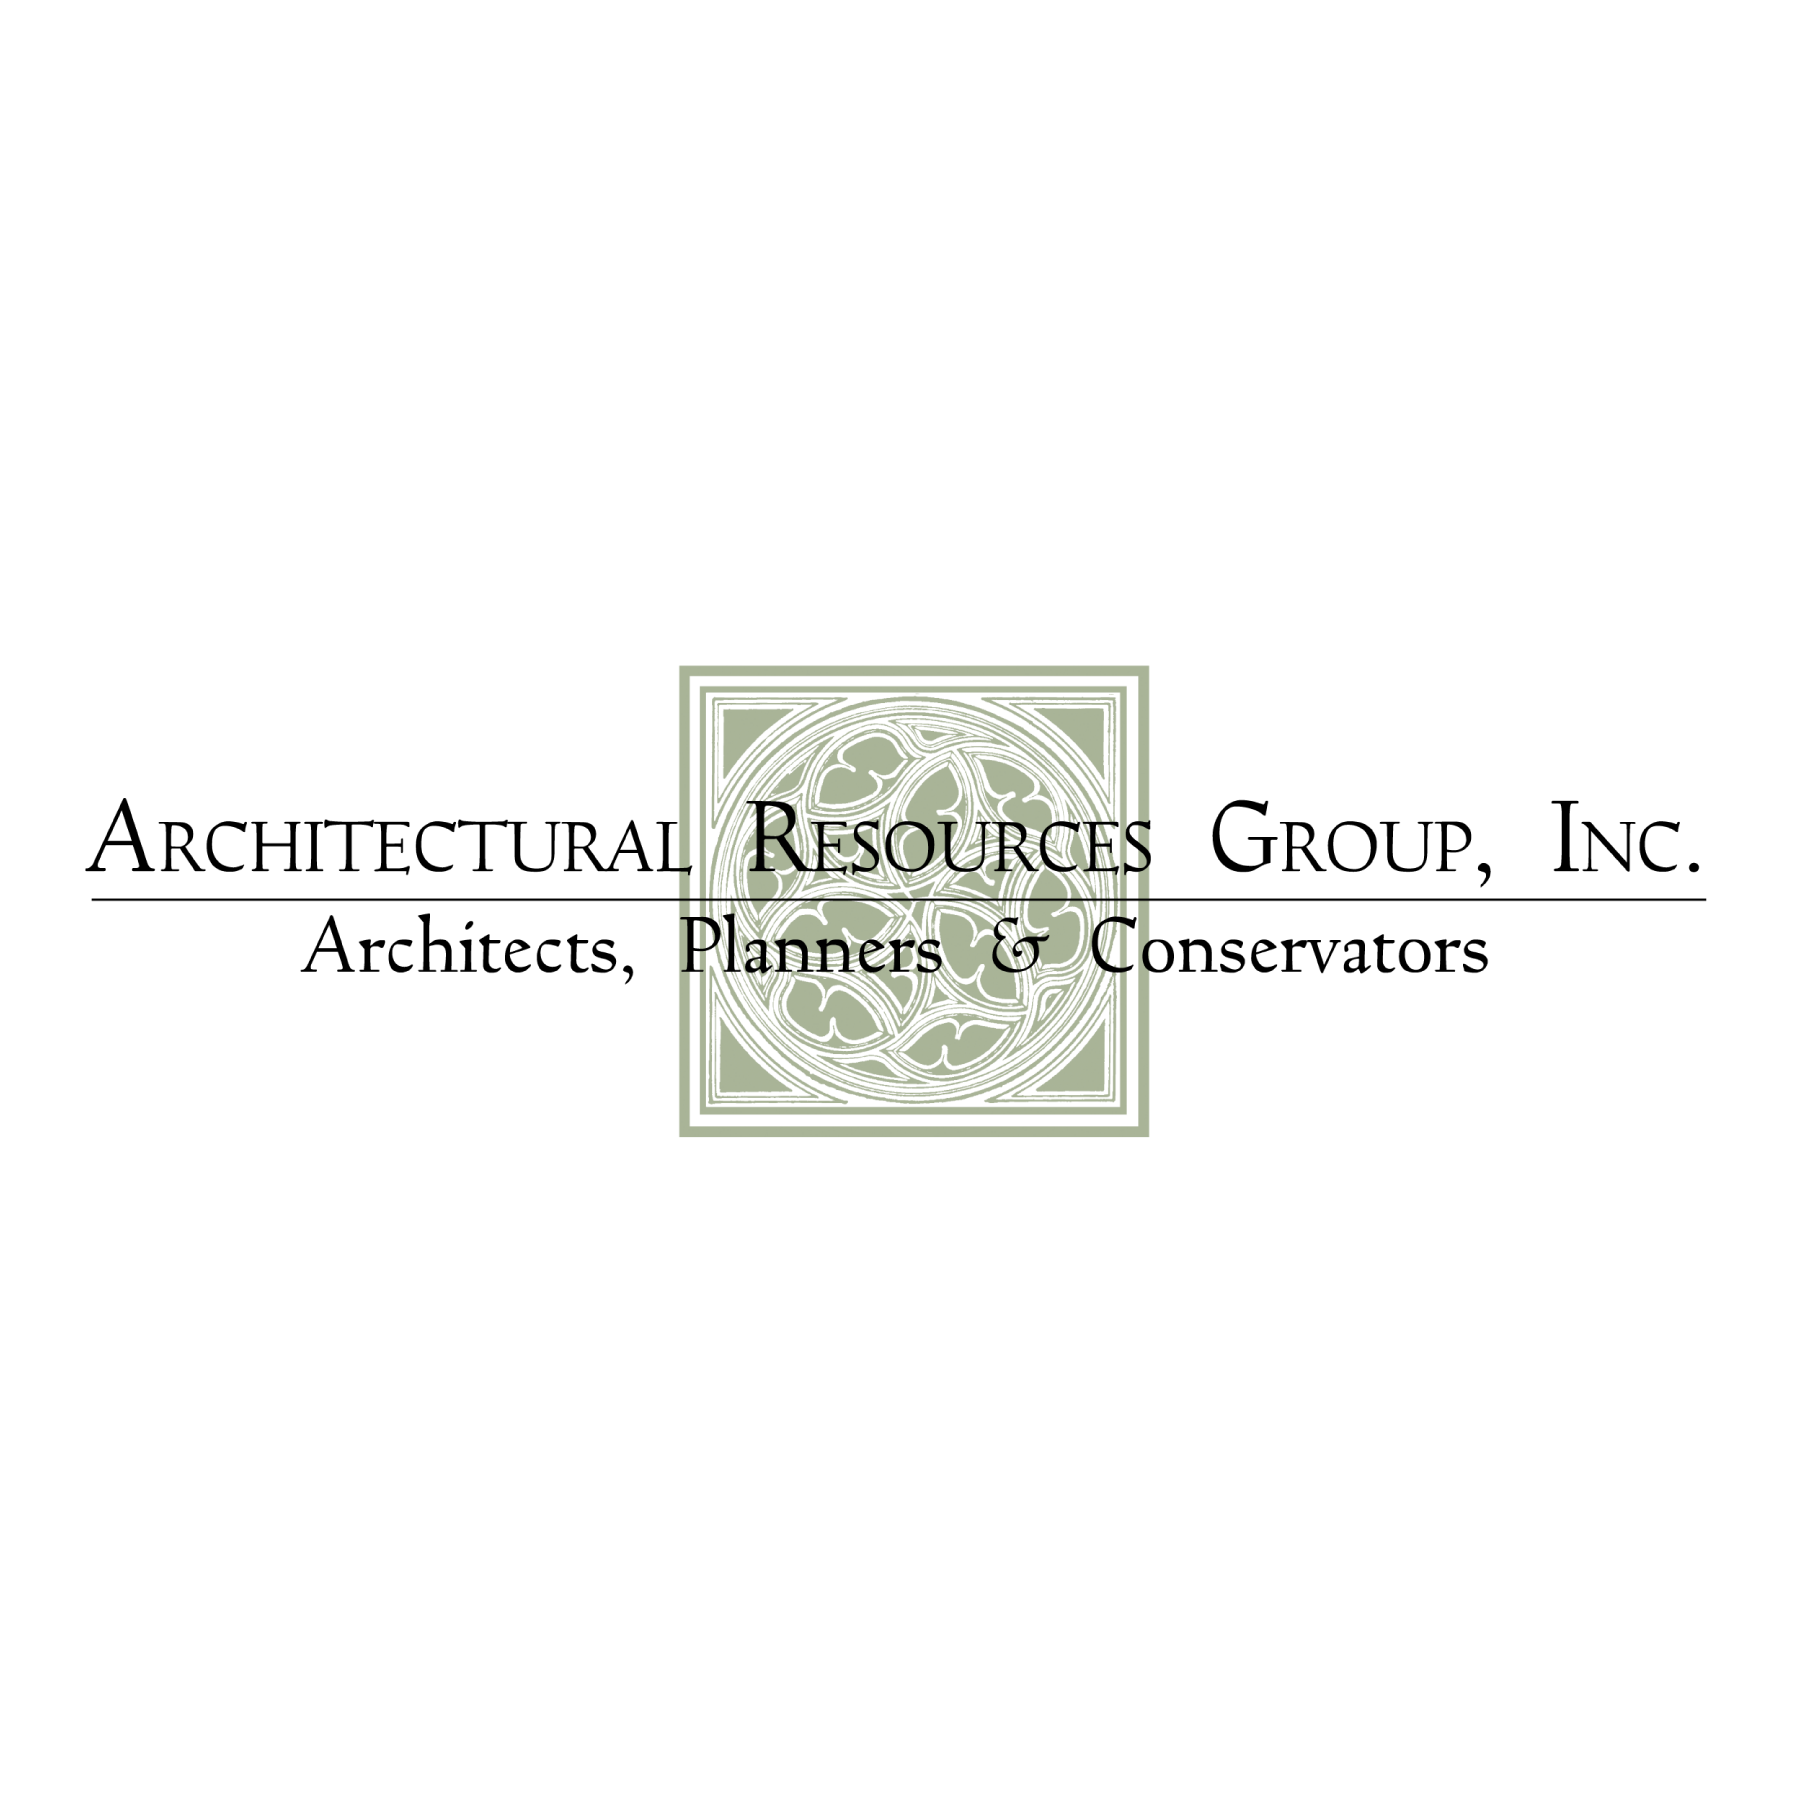 Architectural Resources Group